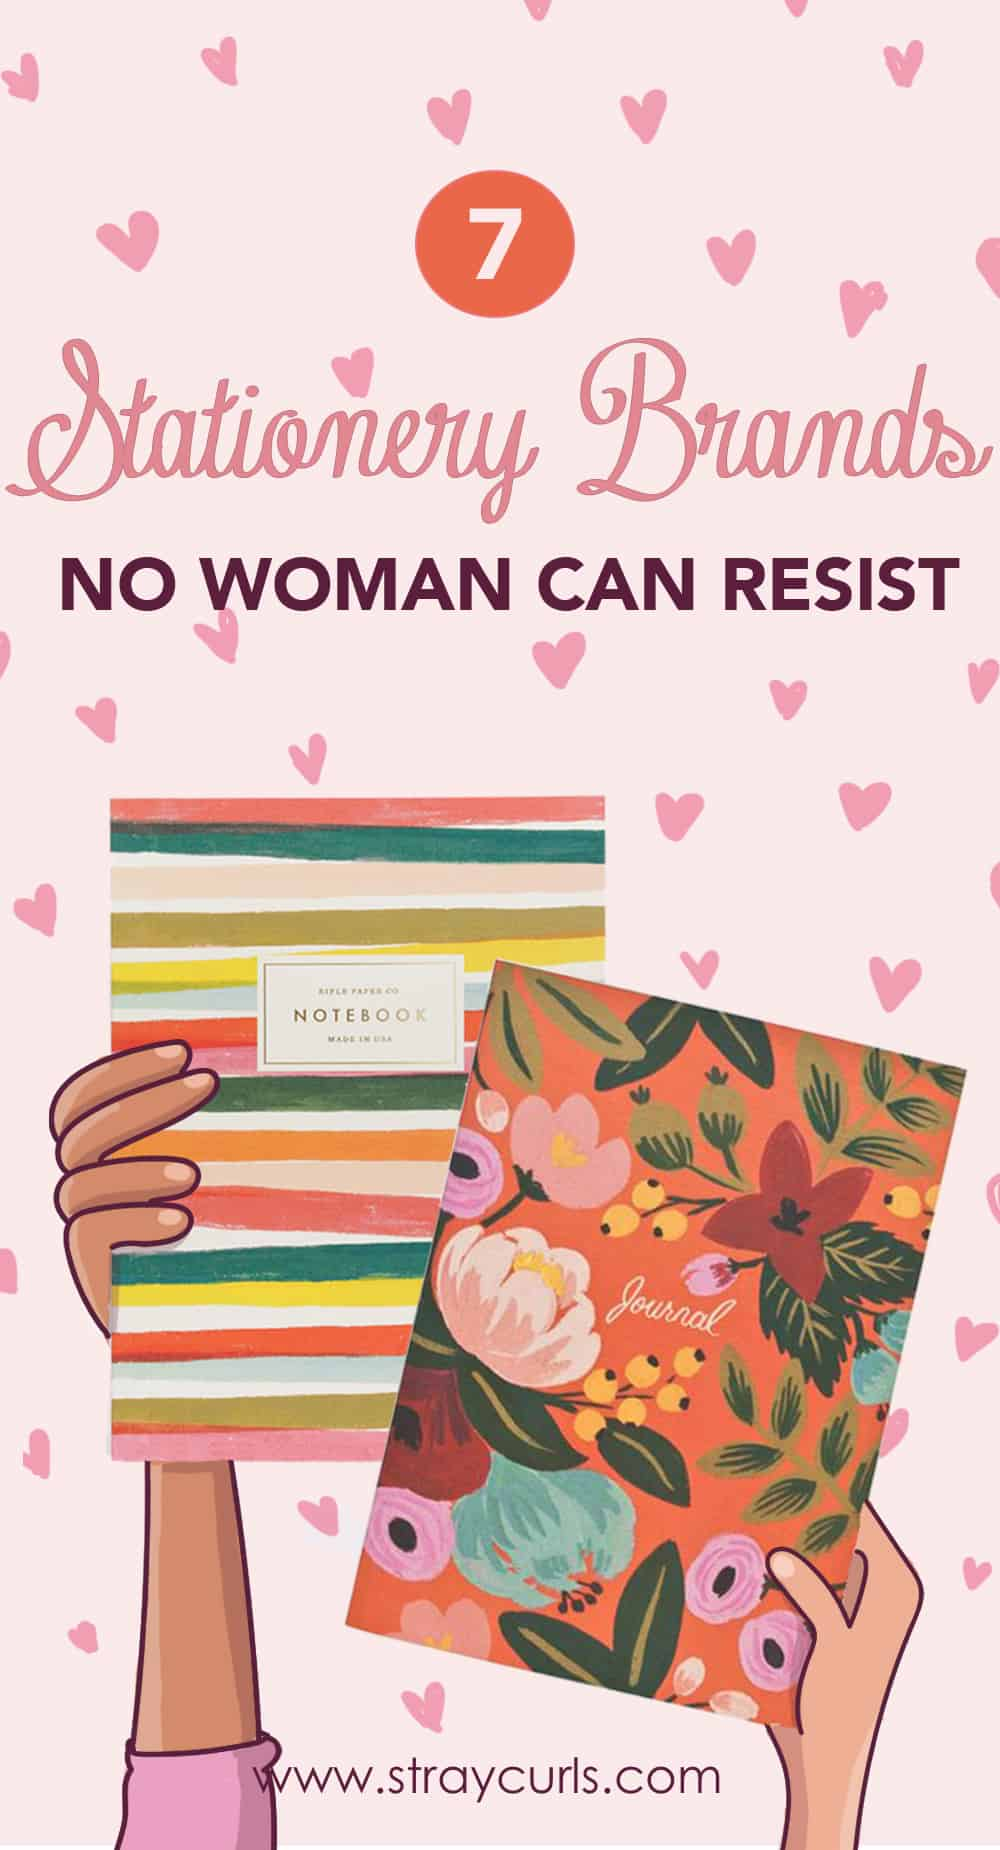 7 Online feminine and pretty stationery shops that creates notebooks, planners, pens and more for girls all over the world. If you're a stationery lover, then this post is your dream destination for cute Stationery featuring Ban Do, Rifle Co, Orange Circle Studio and more.